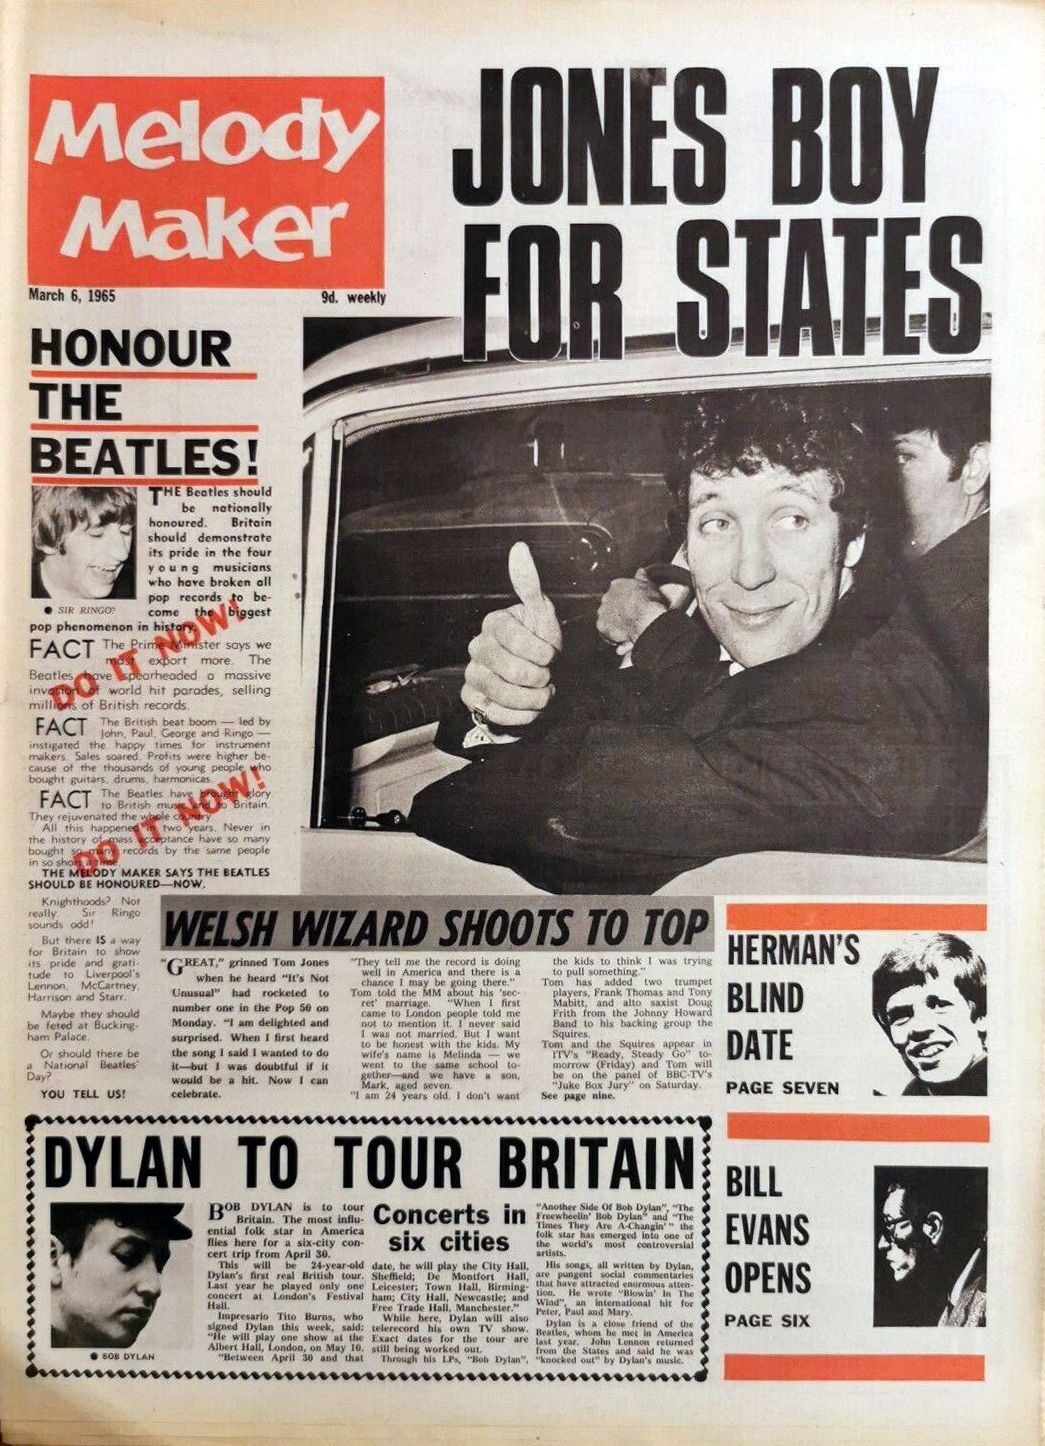 Melody Maker 6 March 1965 Bob Dylan cover story